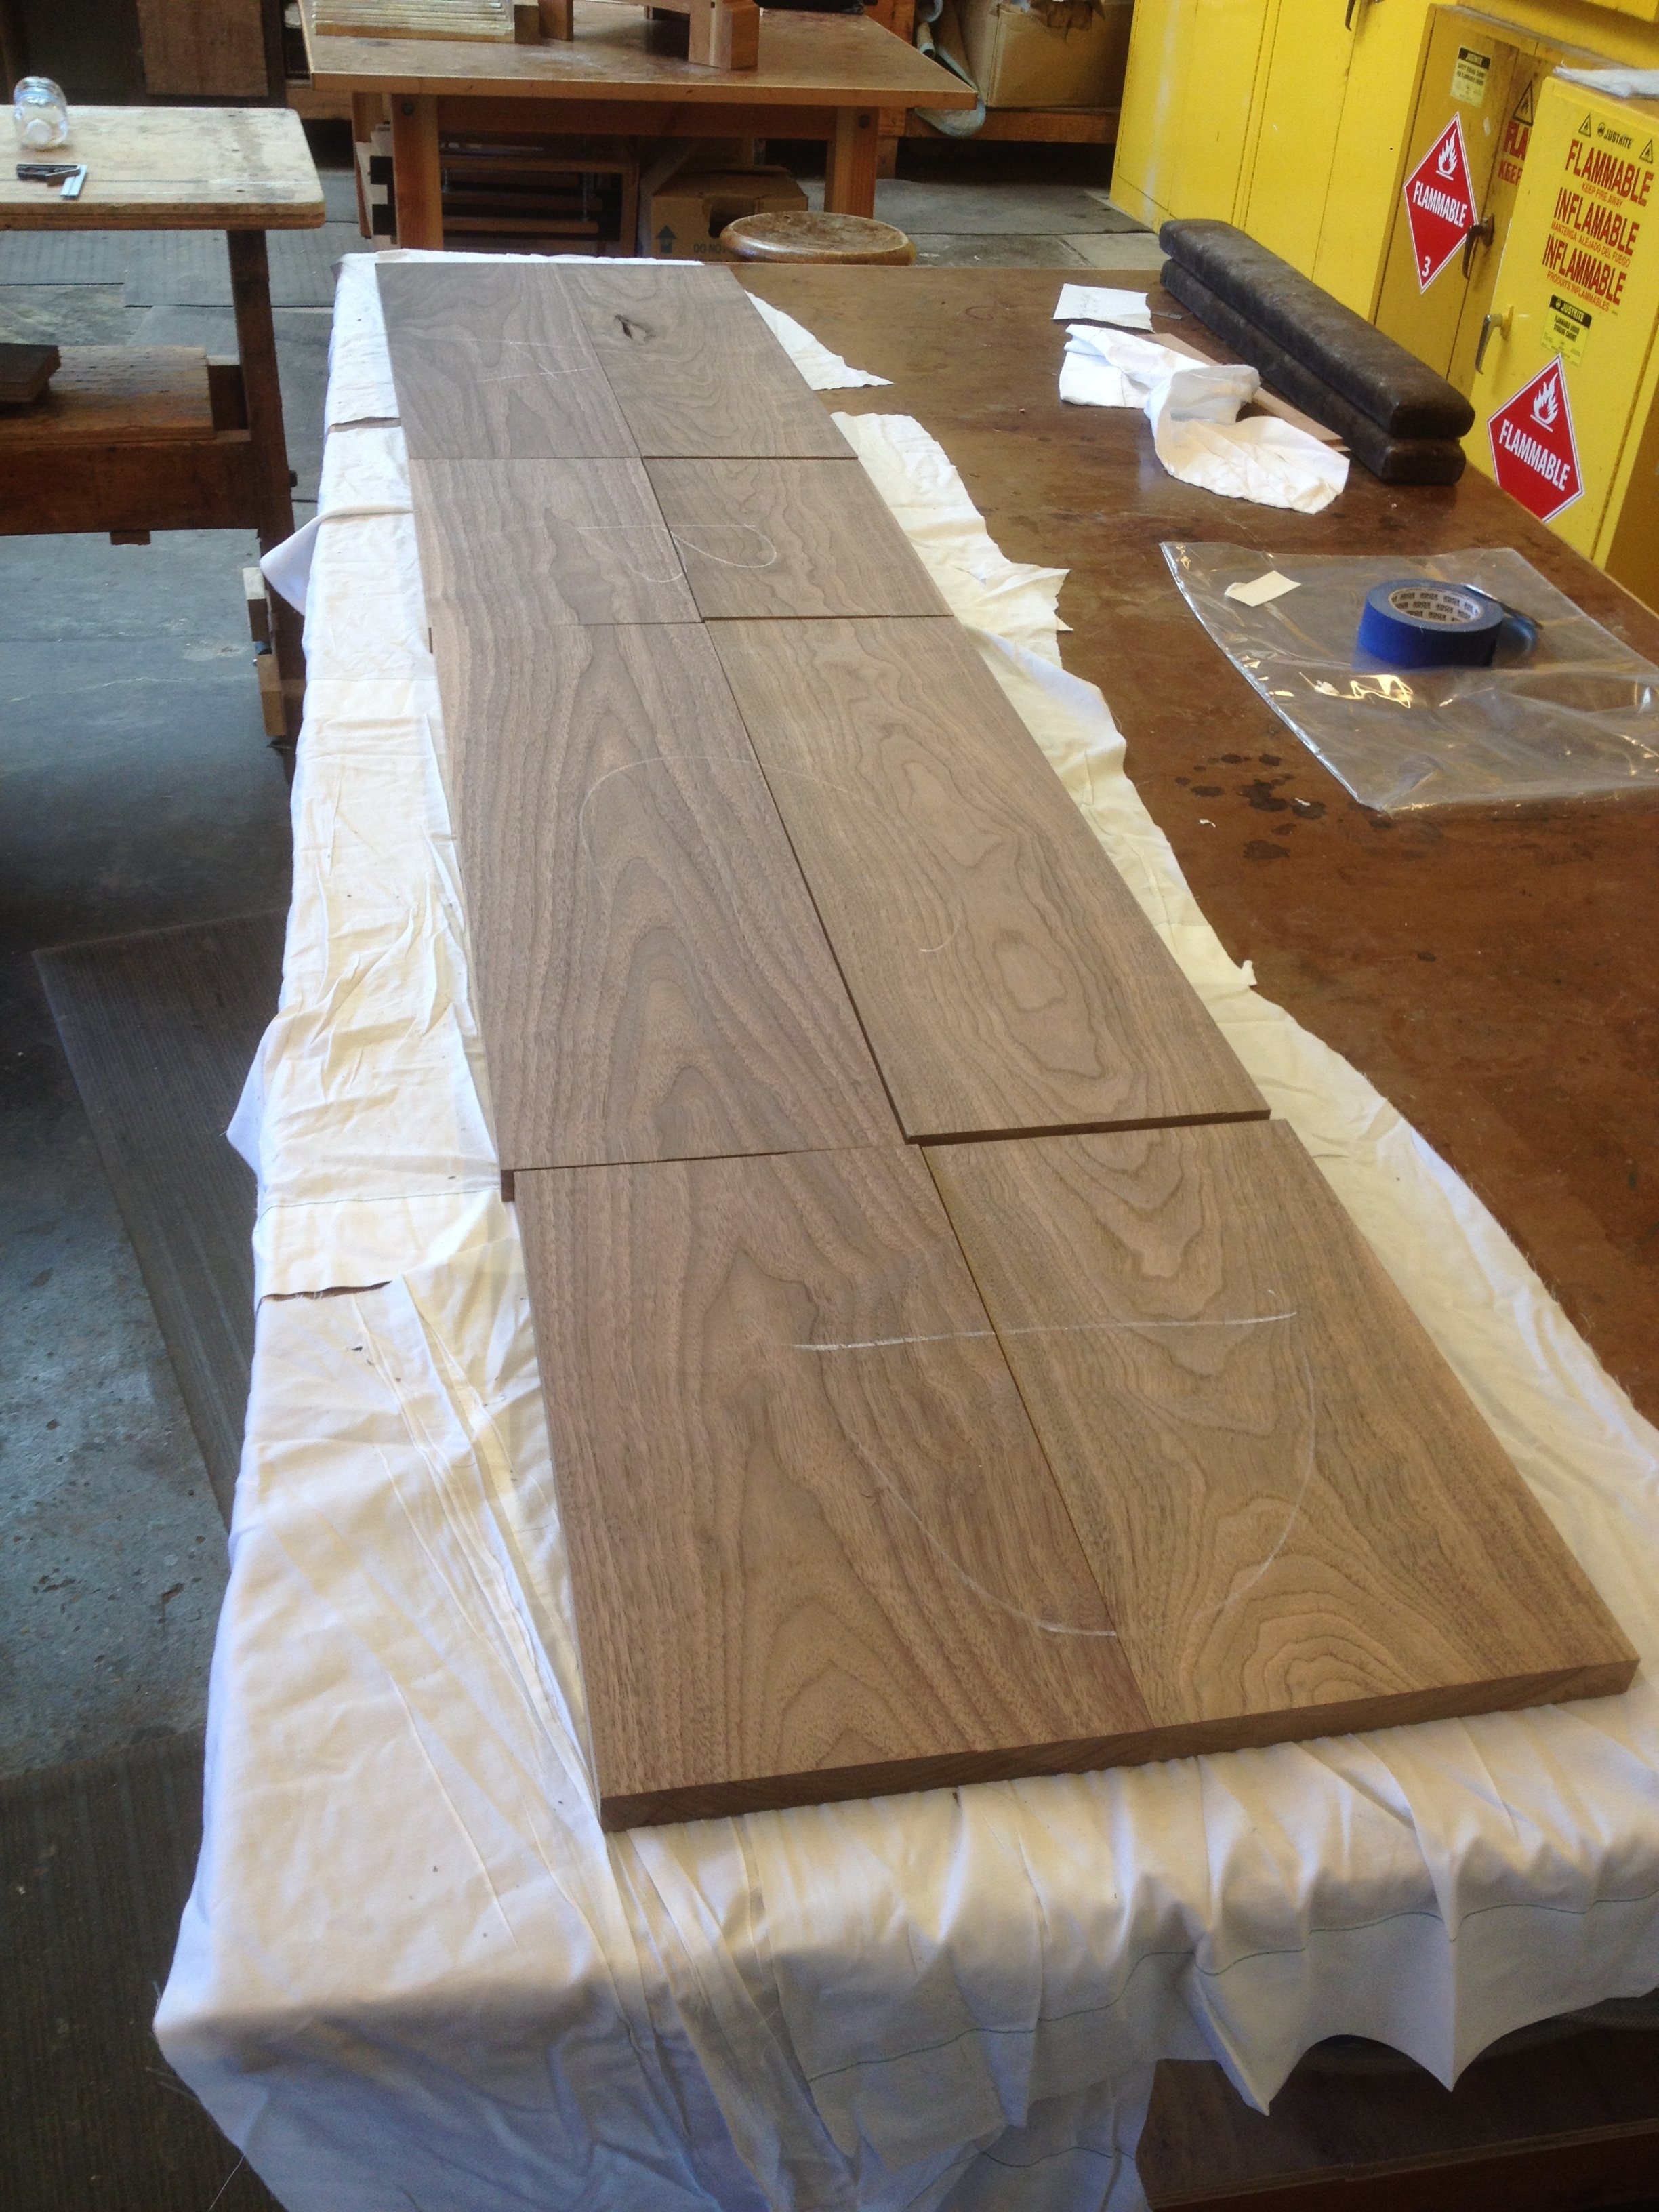 Laying out the toolbox panels to ensure a continuous grain pattern.